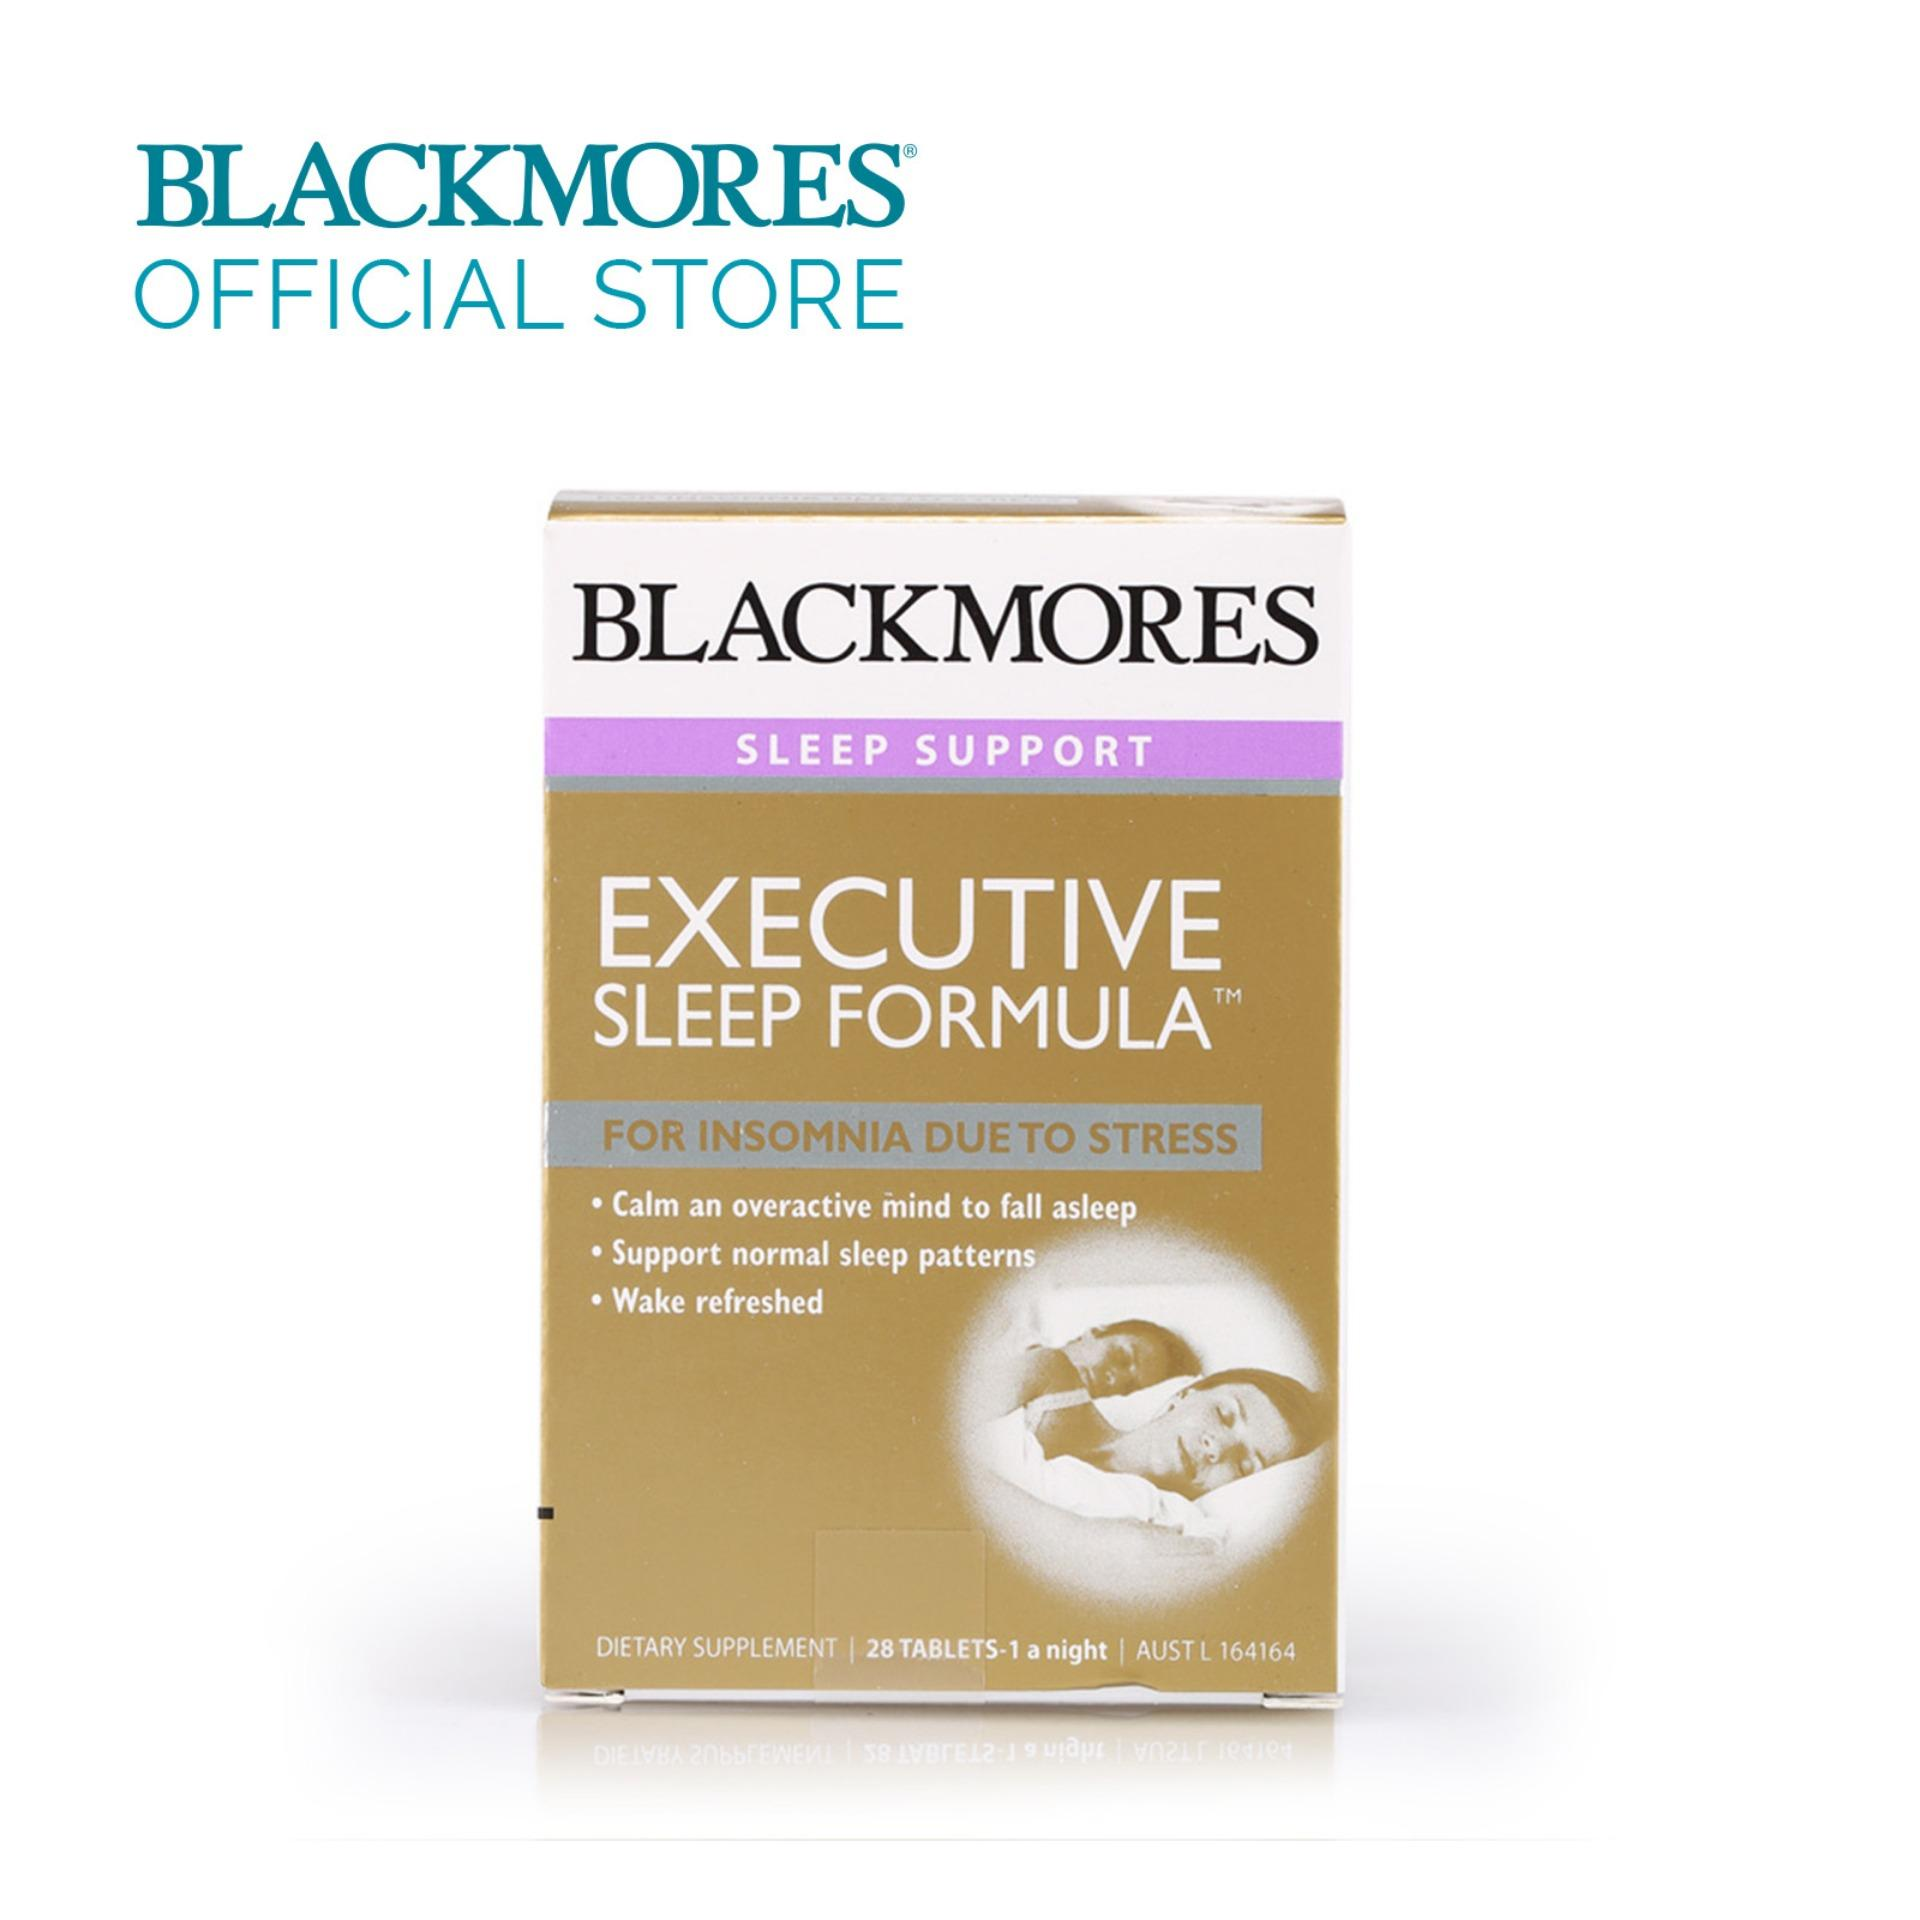 Check For Price Of Blackmores Folate 90tabs Update Singapore Mens Performance Multi 50 Tablets Executive Sleep Formula 28tabs